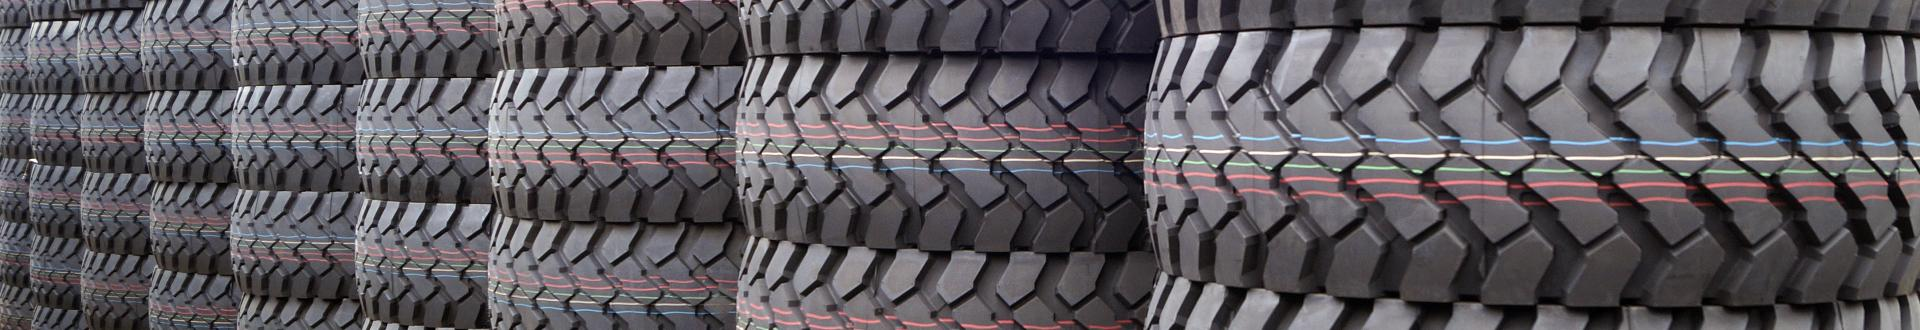 TYRE SOLUTIONS FOR ALL TYPES OF TRUCKS